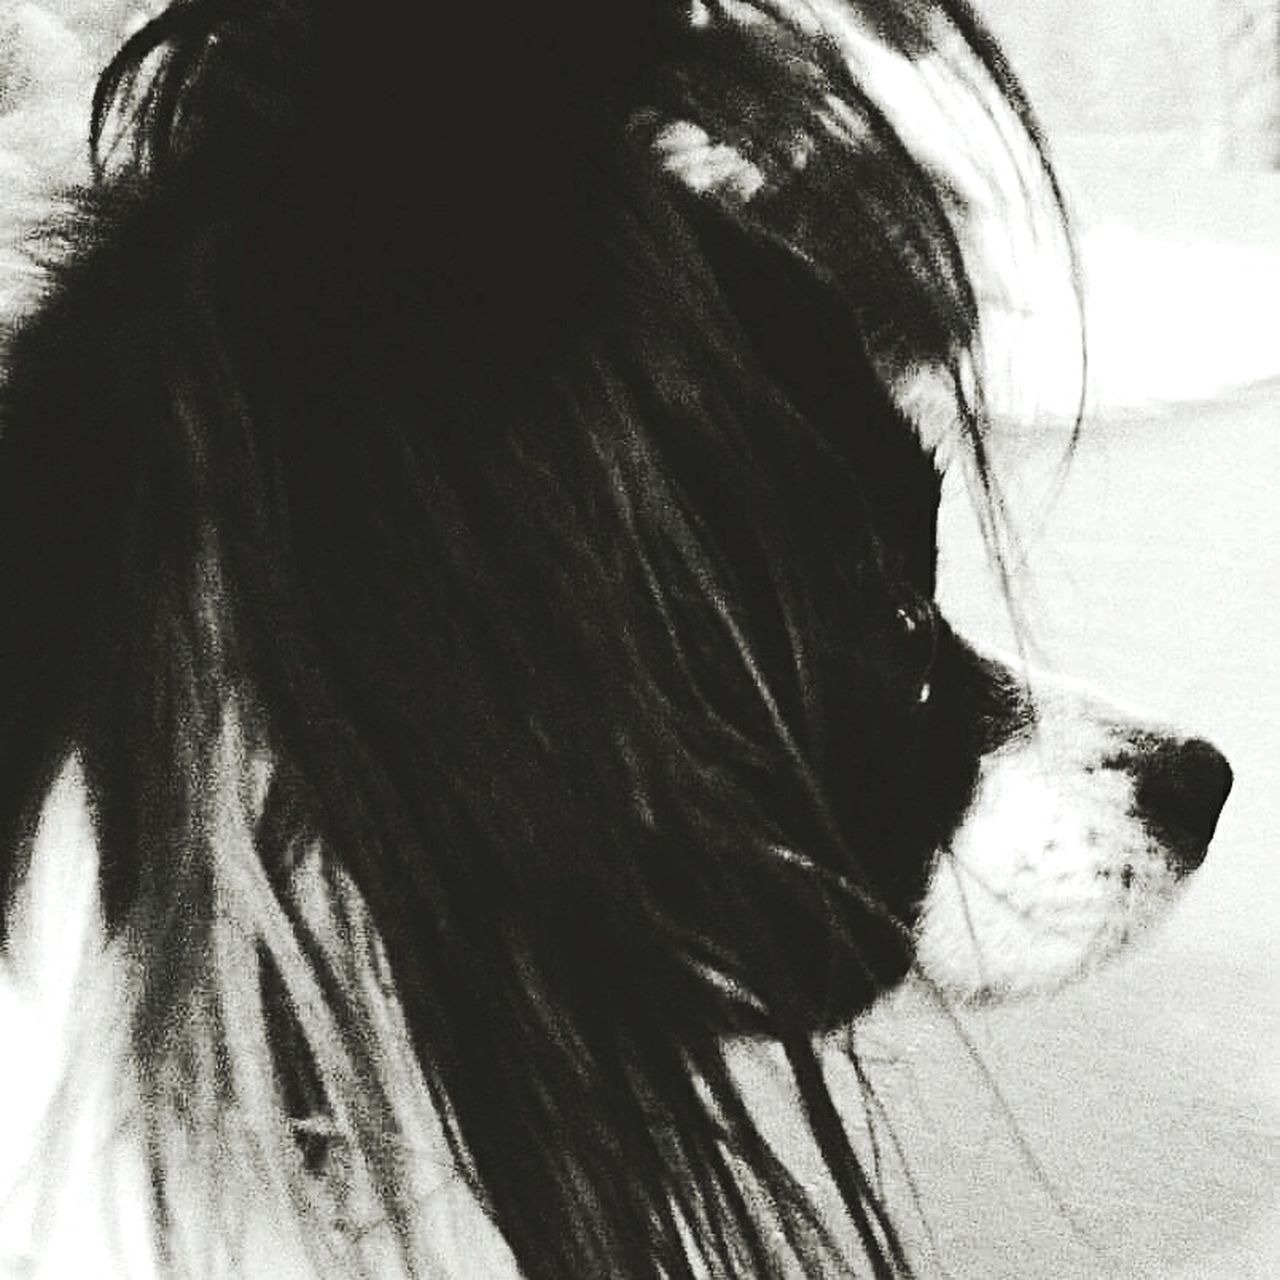 Dogoftheday Dog Photography Dogsofinstagram Dogs Of EyeEm Eyeem Photography Papillon Dog Papillion Animal Photography No People My Photography Doglover Eyeemphotography Portrait Domestic Animals Pets One Animal Dog Eyeemphoto Animal Themes Papillons Papillon Papillion, Dog, Cute, Precious, Furry EyeEm The Best Shots EyeEmbestshots Close-up